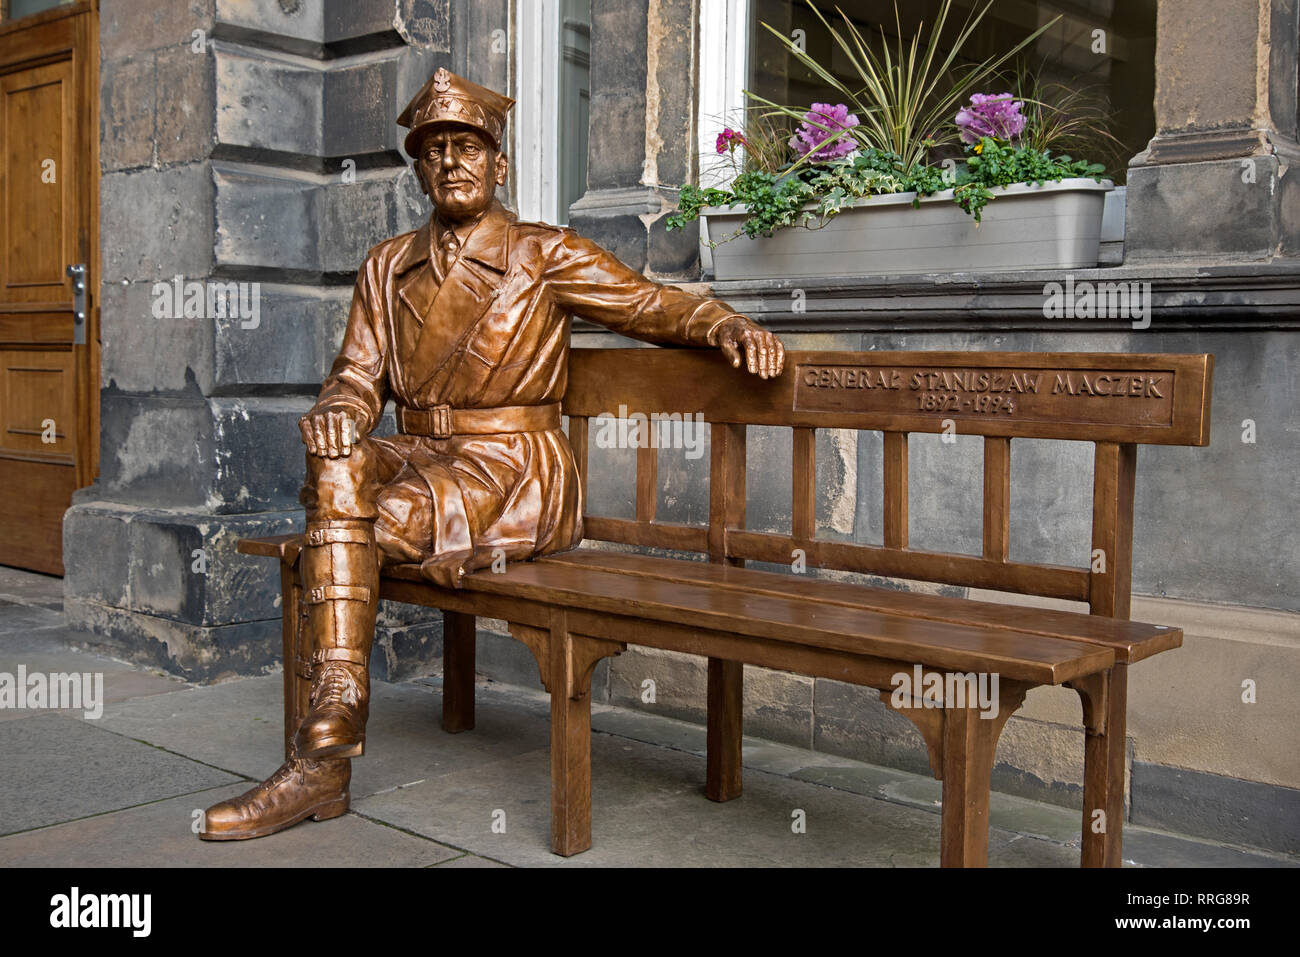 Statue of the Polish war hero General Stanislaw Maczek at the City Chambers on The Royal Mile in Edinburgh's Old Town. - Stock Image